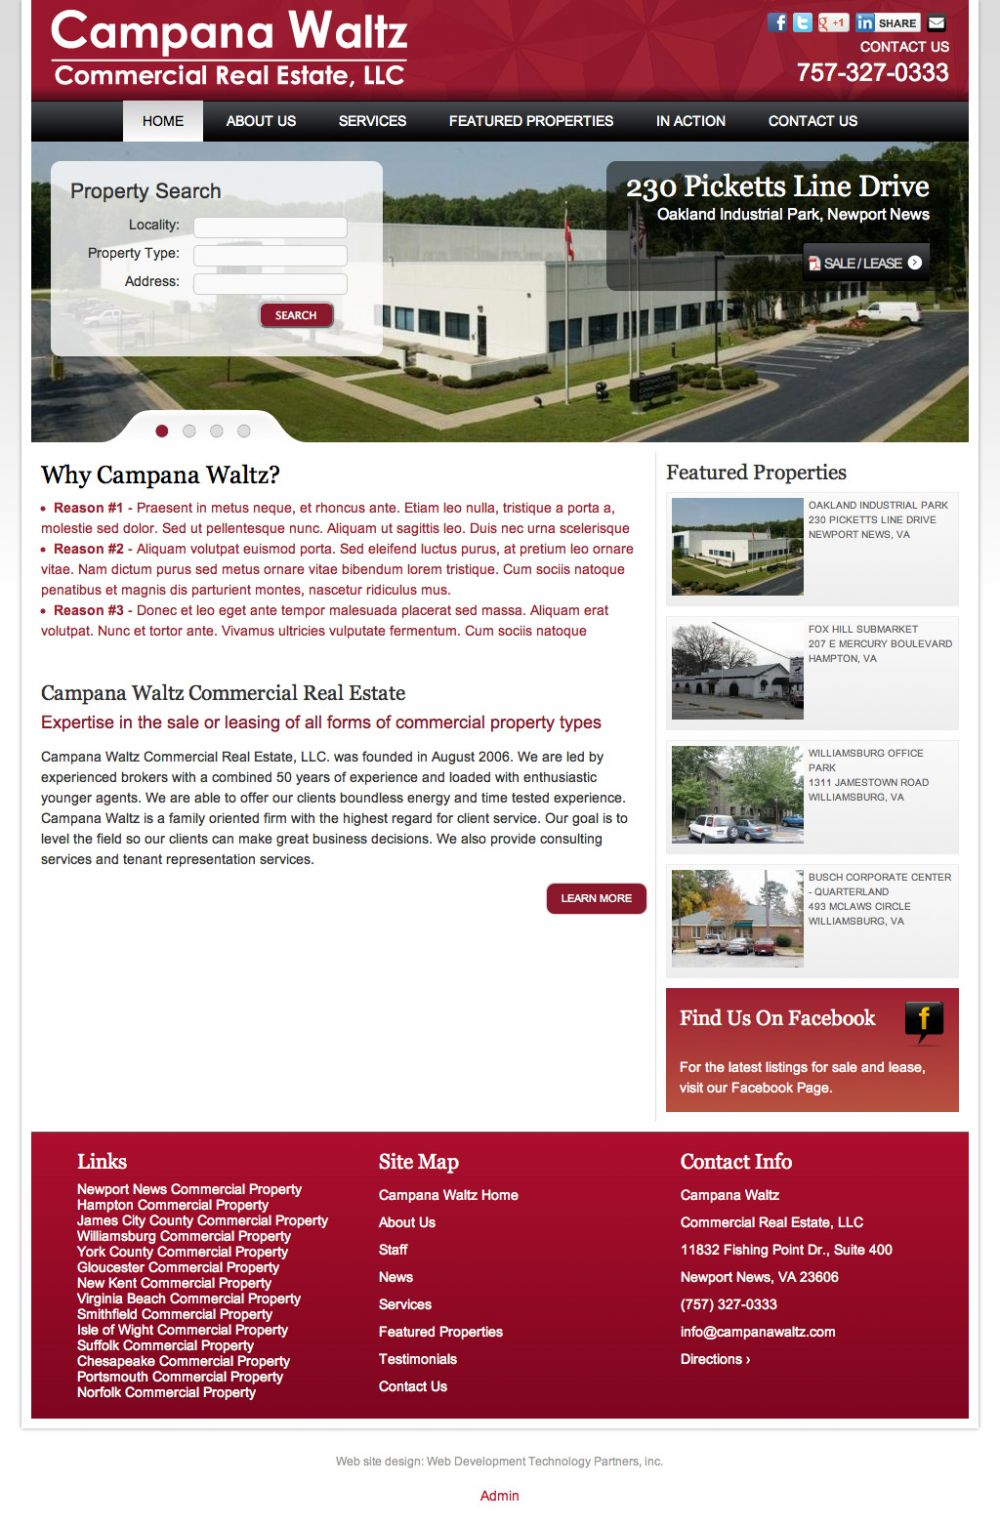 Campana Waltz Commercial Real Estate